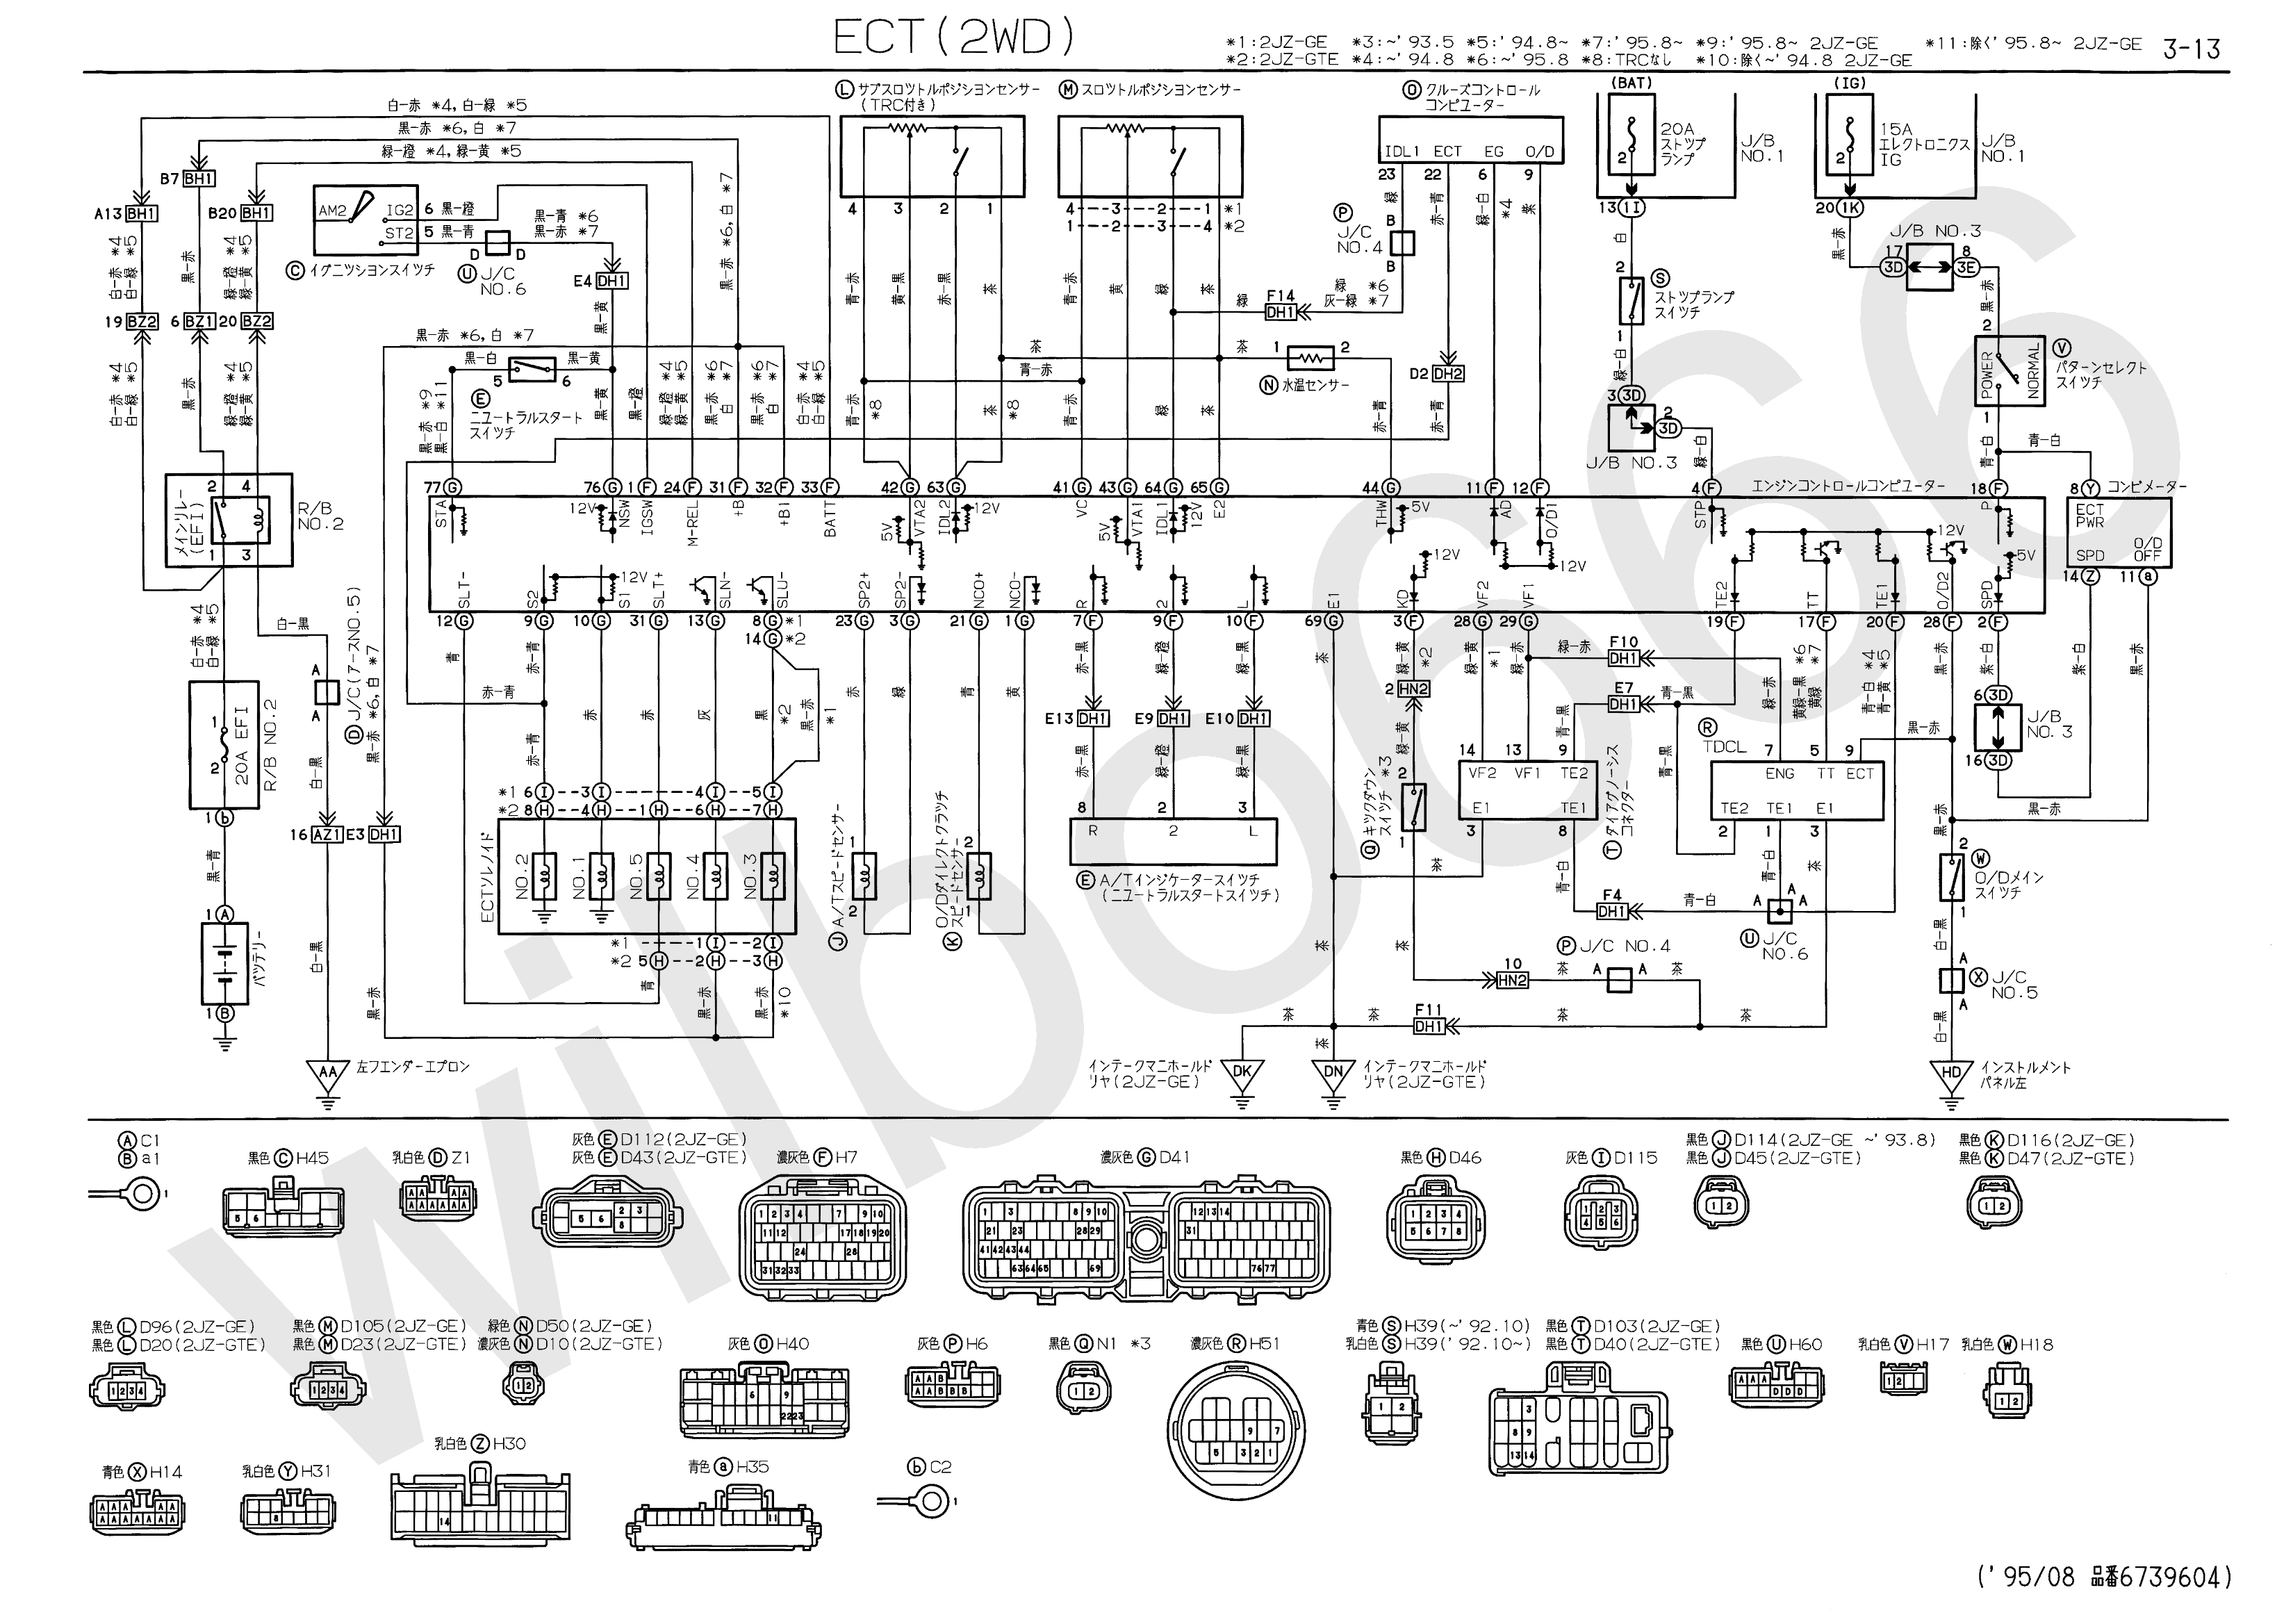 2JZ GTE%20JZS147%20Aristo%20Engine%20Wiring